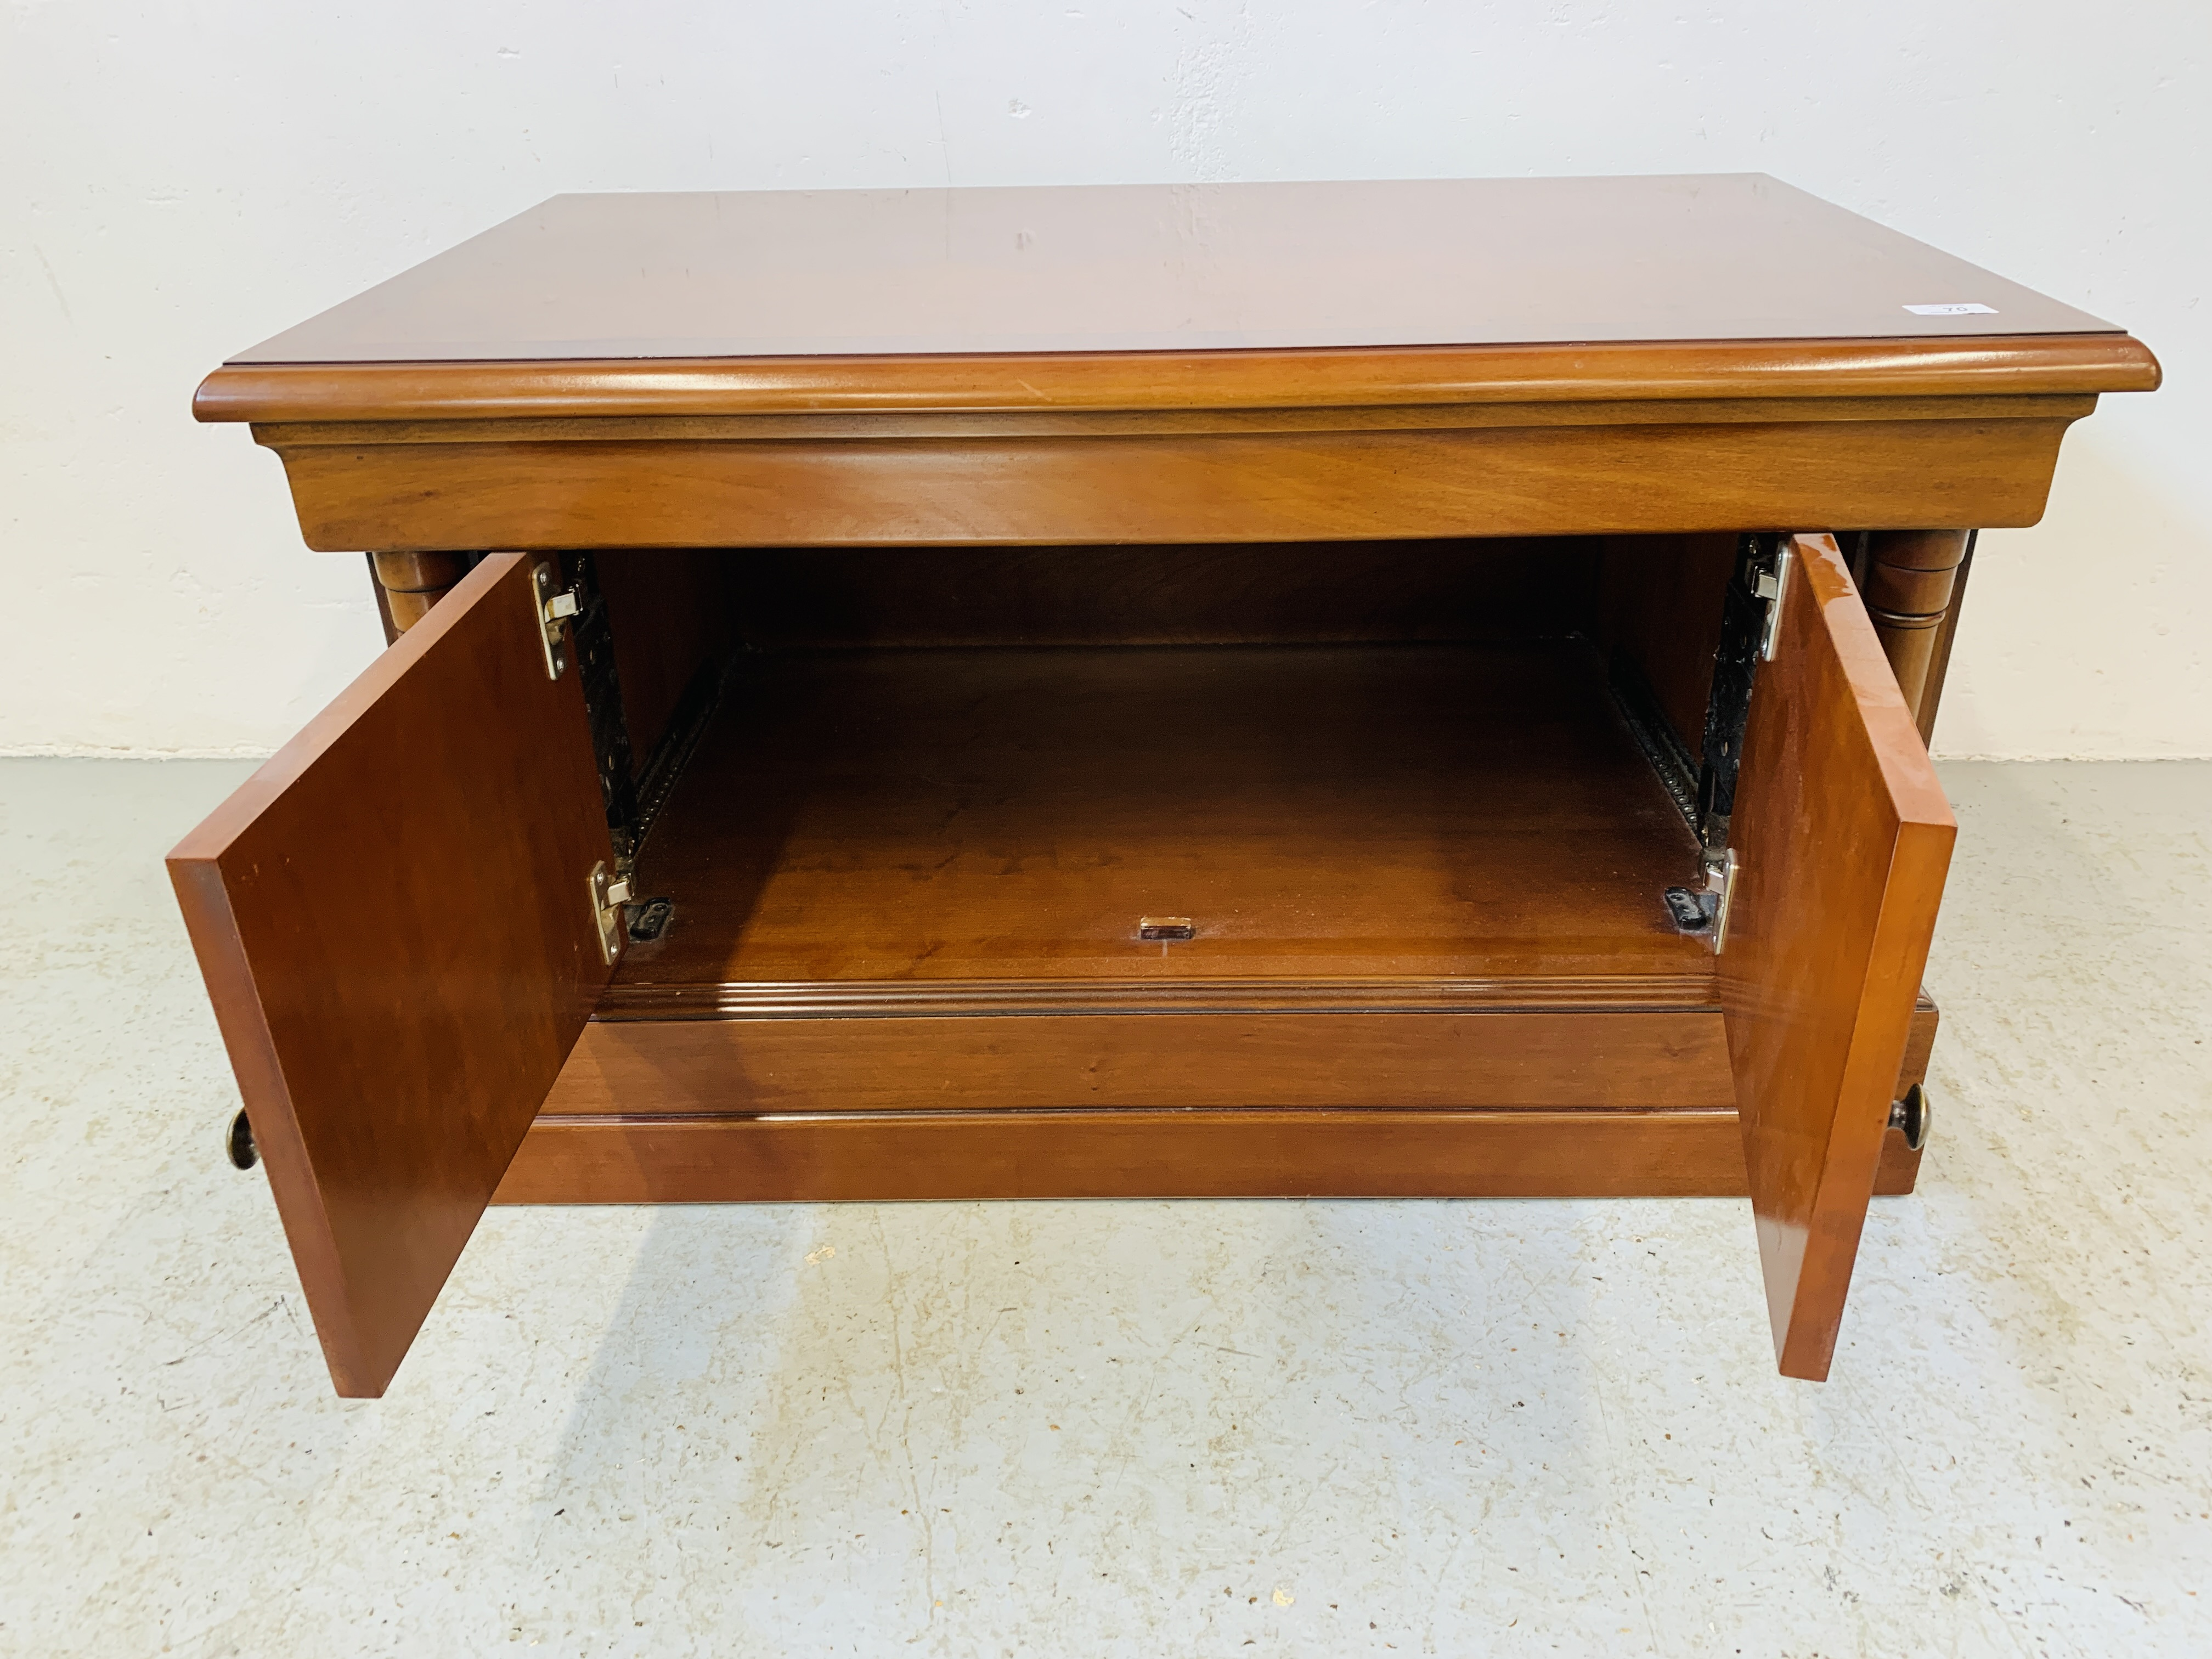 A MODERN CHERRYWOOD FINISH TELEVISION STAND - Image 4 of 7